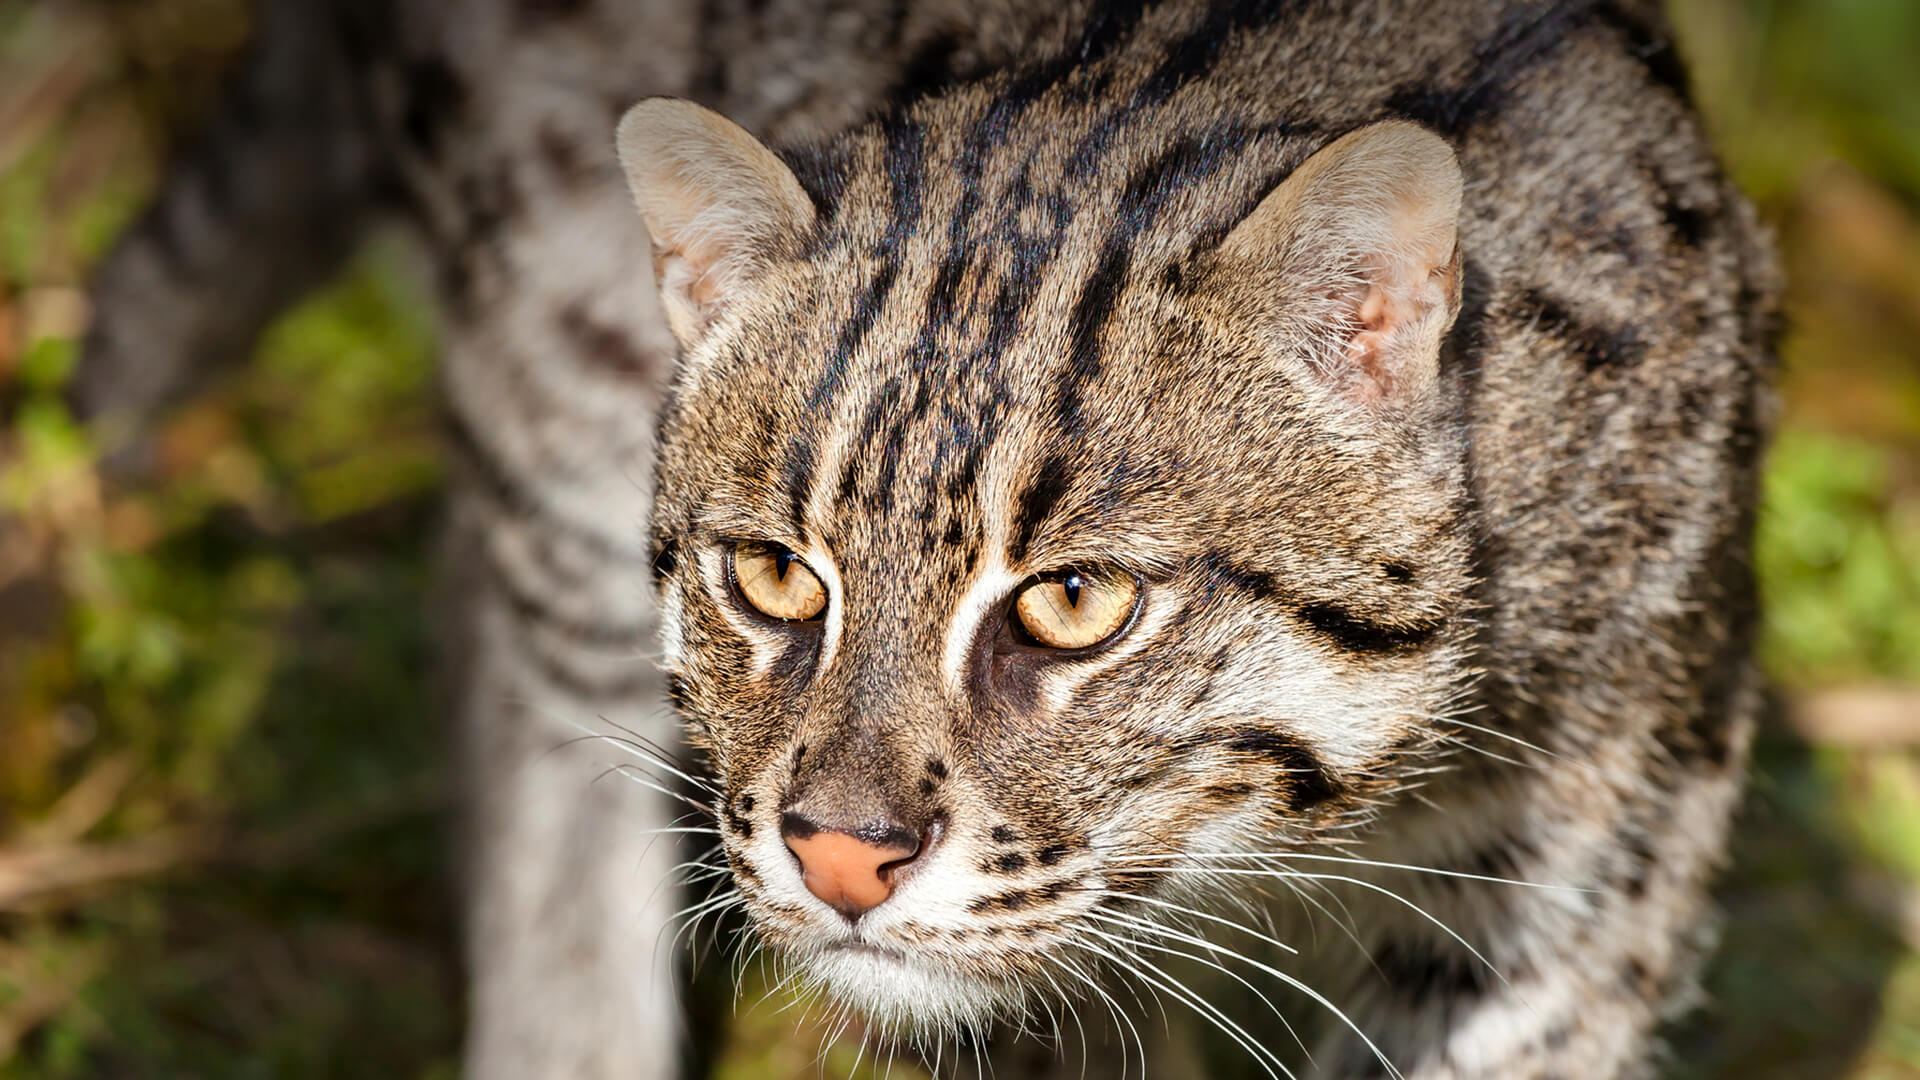 Fishing Cat | San Diego Zoo Animals & Plants